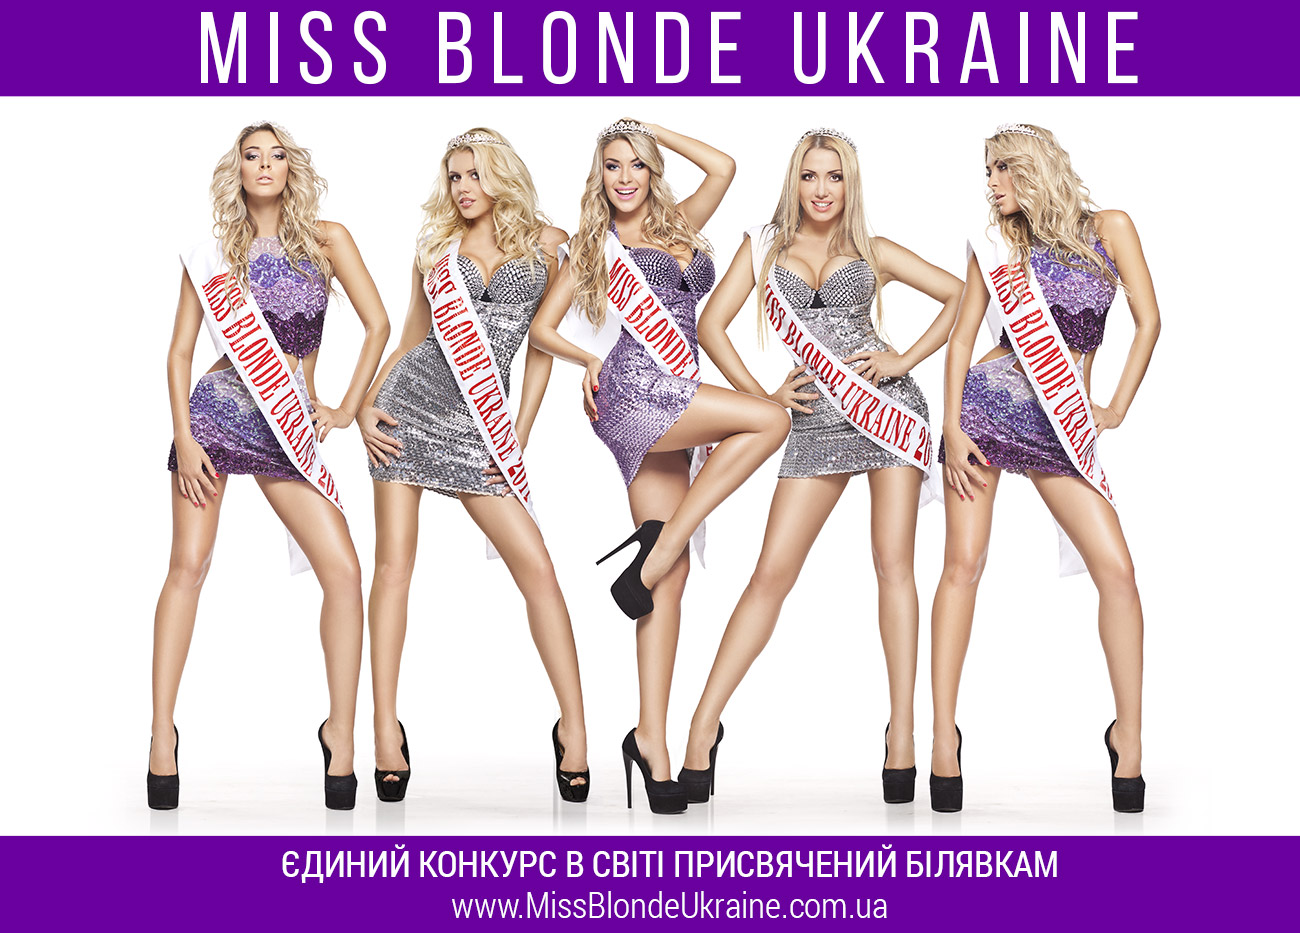 Перейти на сайт Miss Blonde Ukraine